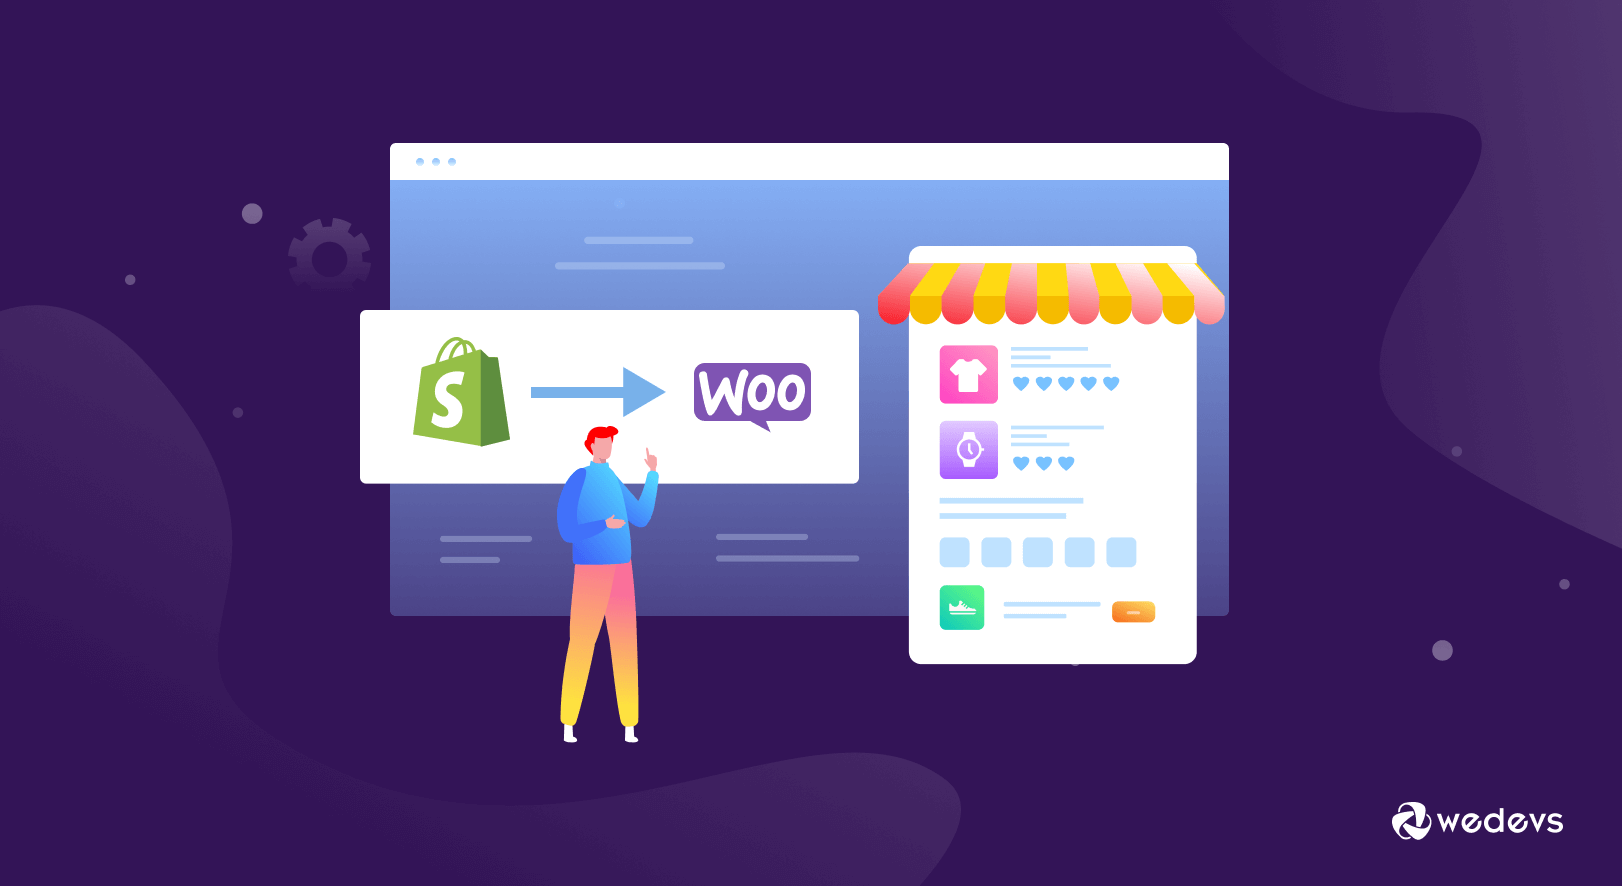 How to Migrate from Shopify to WooCommerce: A Step-by-Step Guide